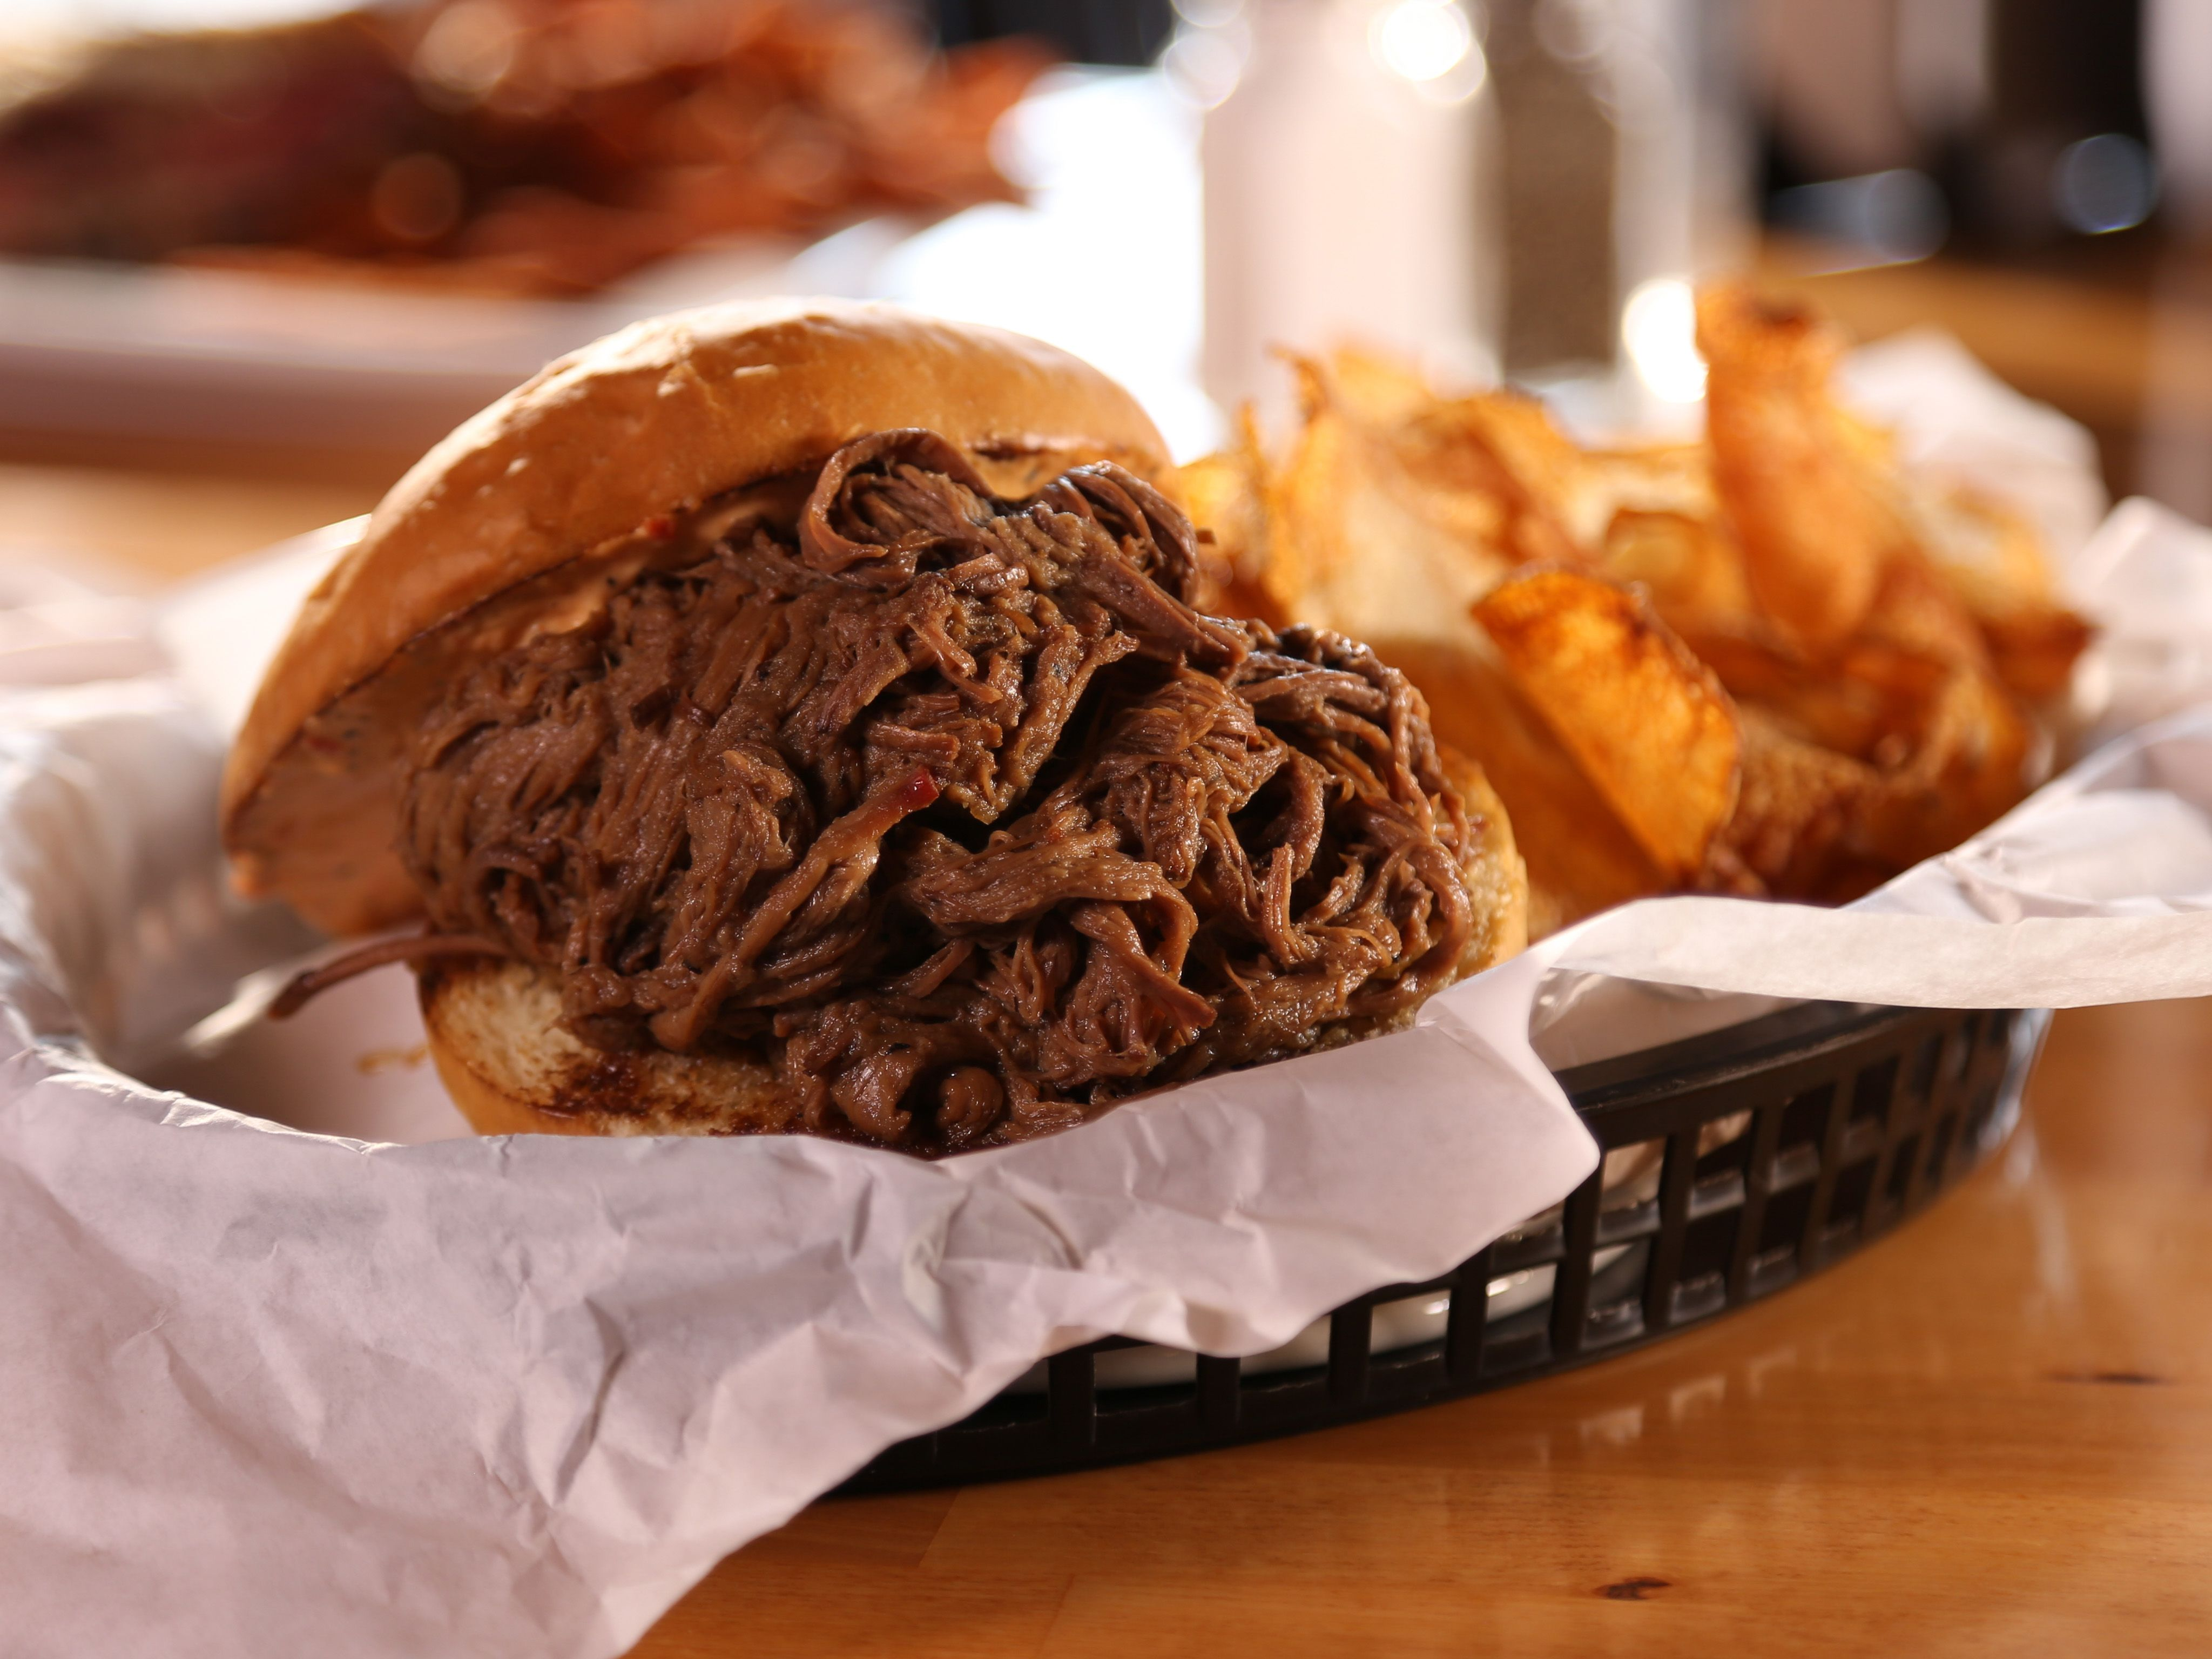 Beer Braised Beef recipe from Diners, Drive-Ins and Dives via Food Network